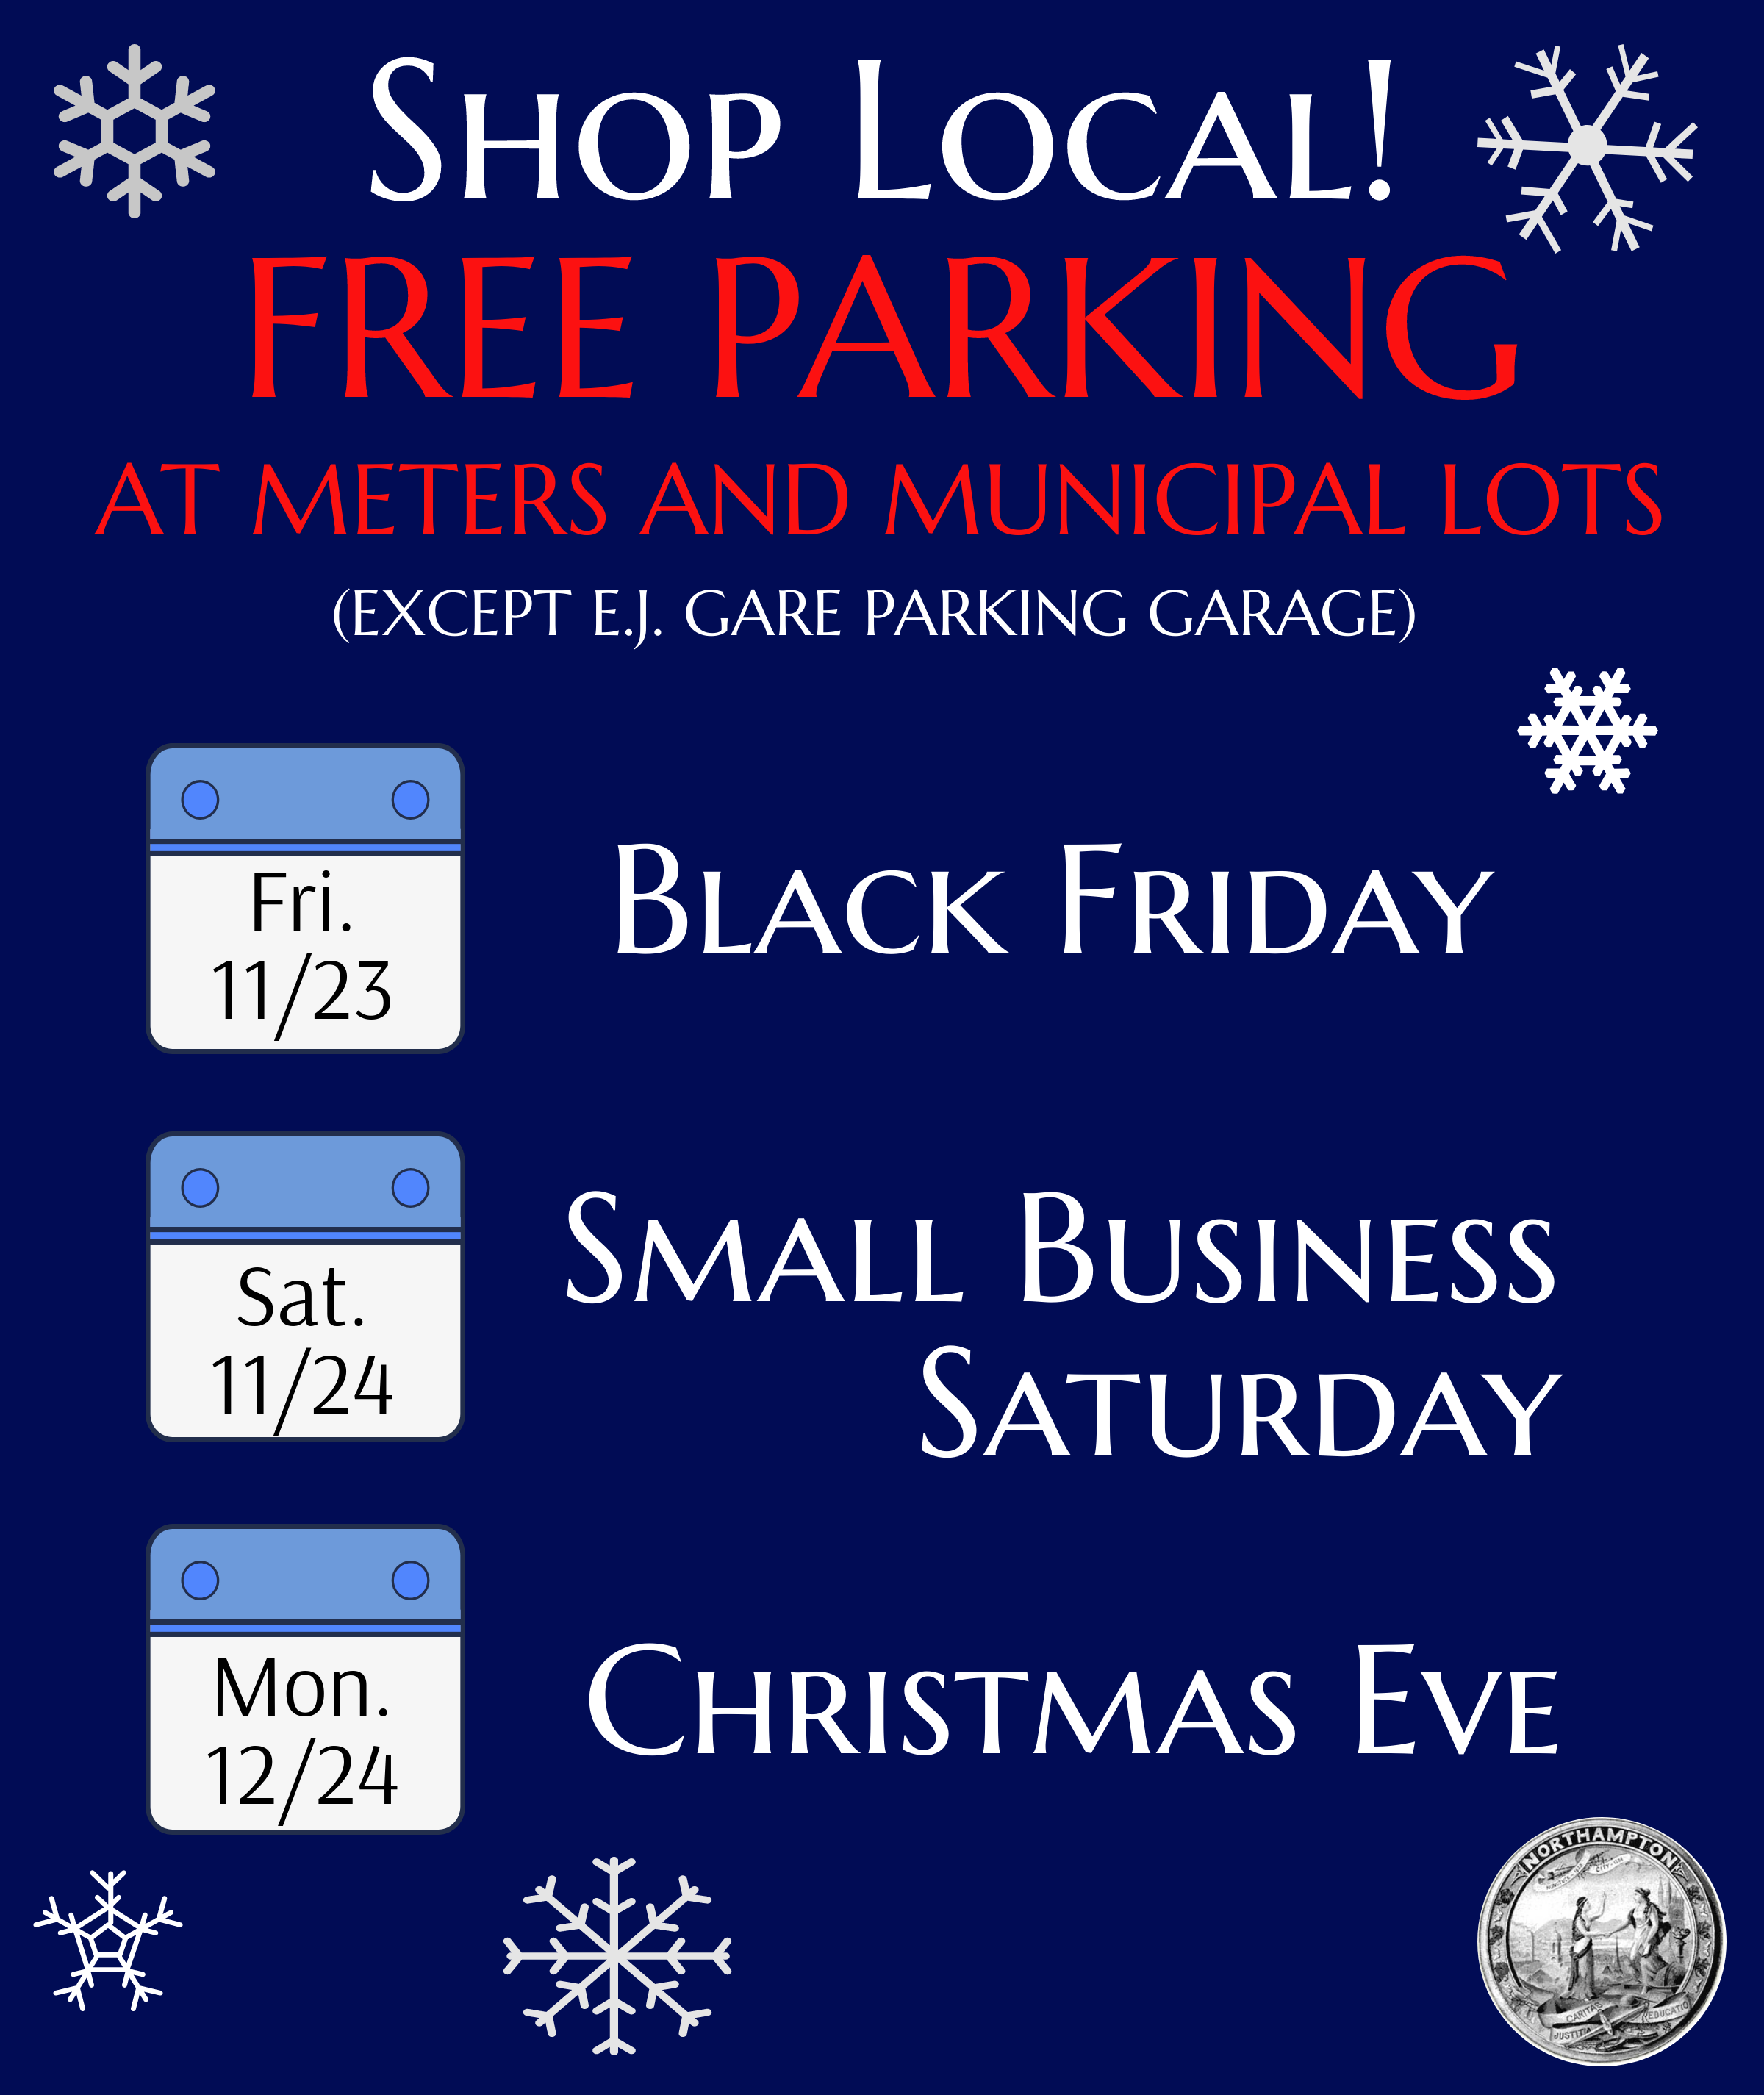 Shop Local! Free Parking in Downtown Northampton!